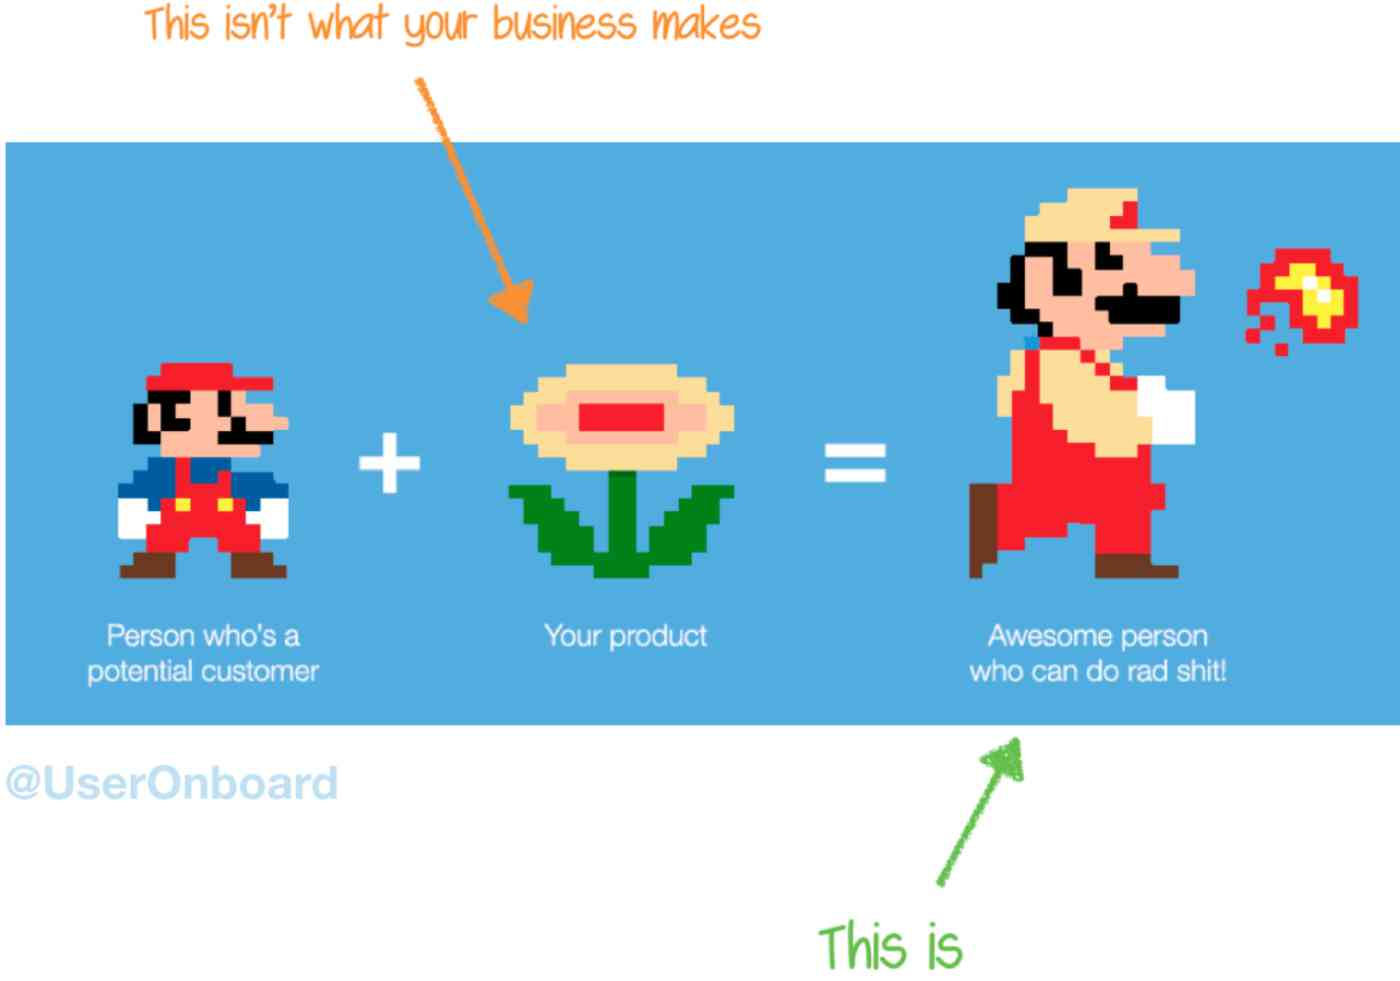 "Mario cartoon captioned ""Person who's a potential customer"" + flower power symbol captioned ""Your product"" = Fire-throwing Mario captioned ""Awesome person who can do rad shit!"""